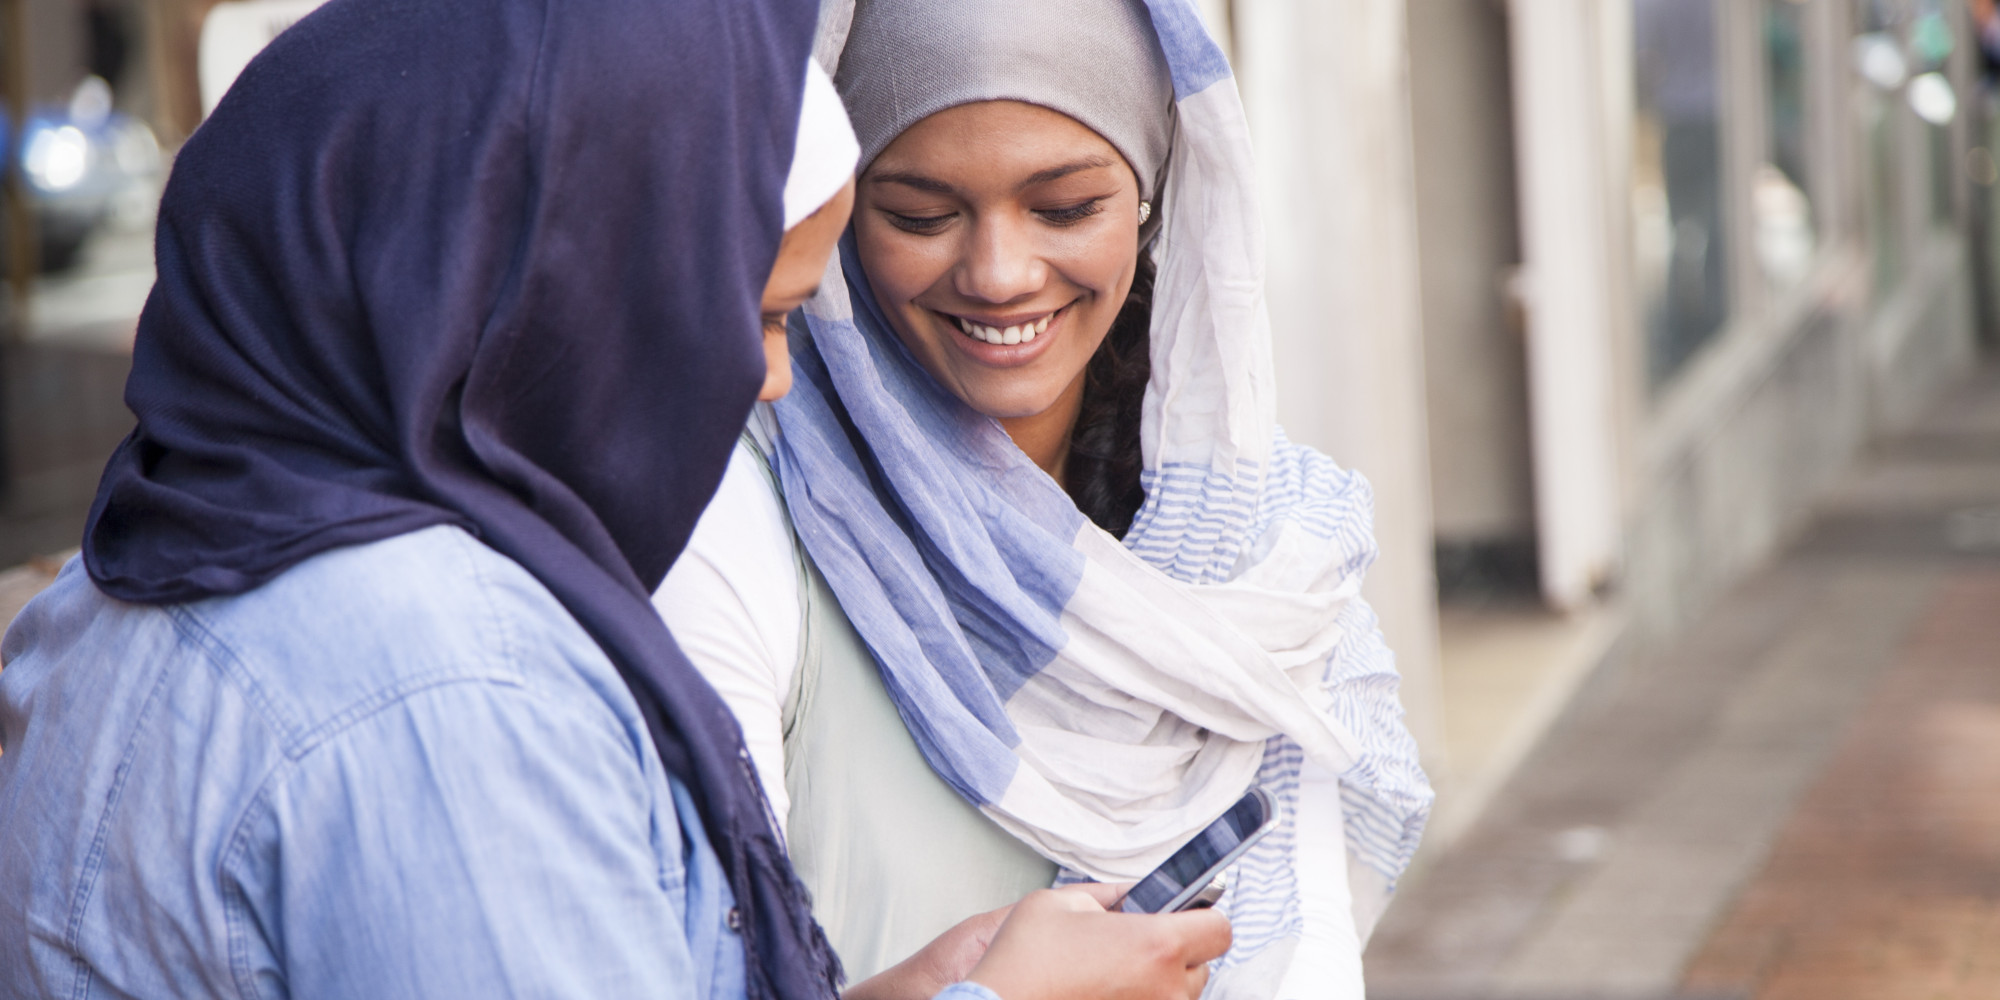 muslim single women in volusia county Meet muslim british women with blue eyes looking for marriage and find your true love at muslimacom sign up today and browse profiles of muslim british women with blue eyes looking for marriage for free - page 3.